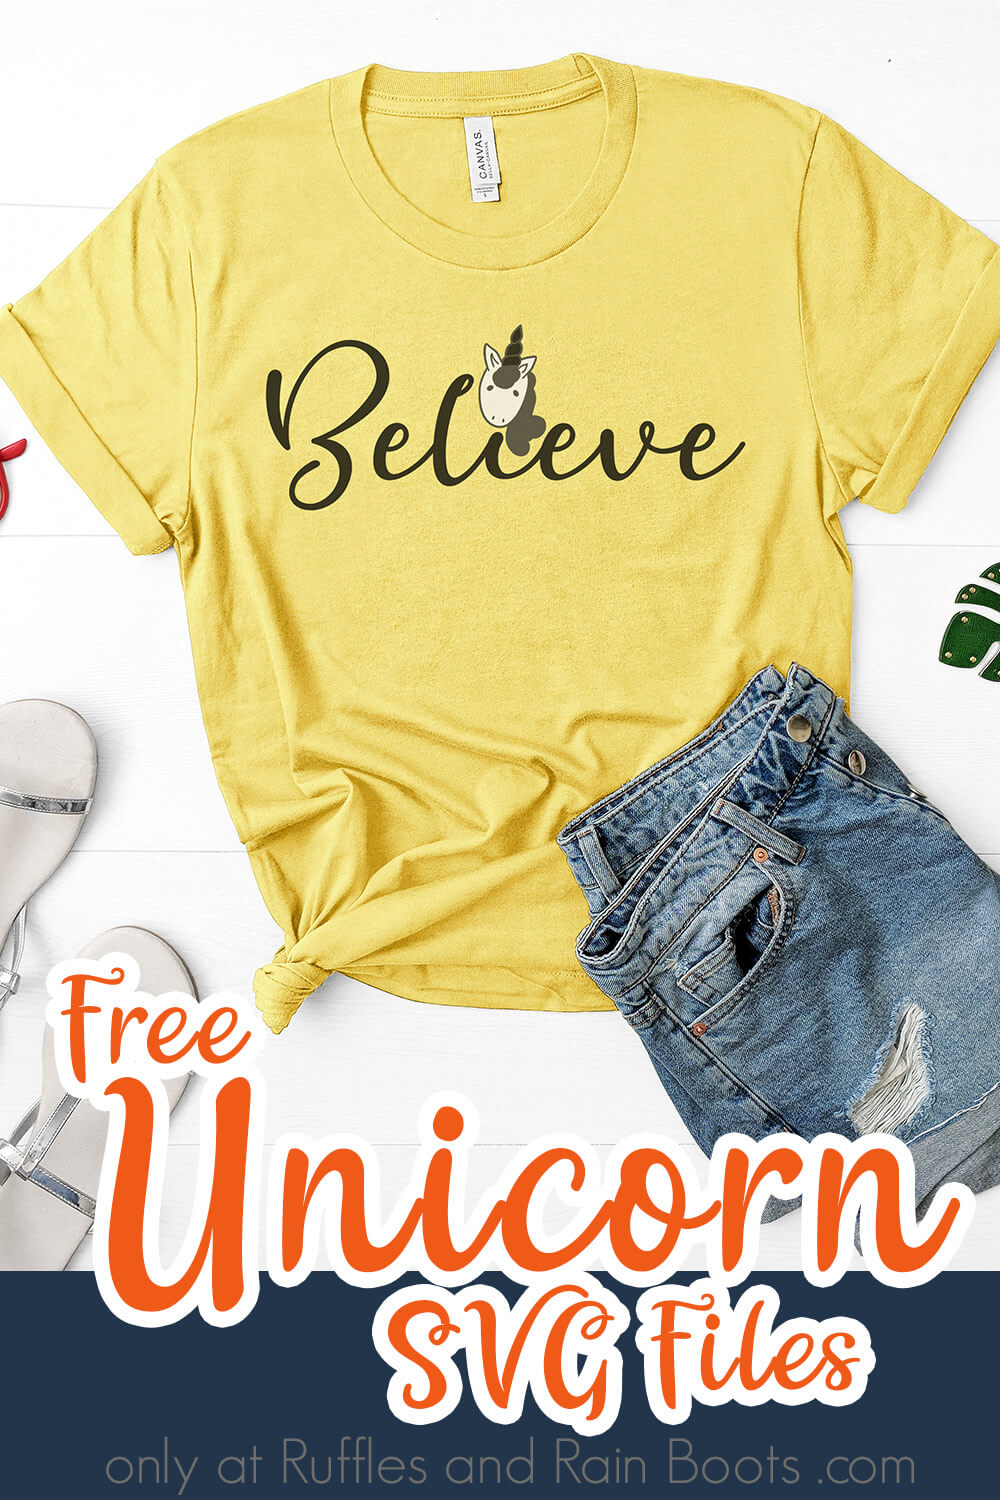 Believe free unicorn svg for cricut on yellow t-shirt with jean shorts, sandals and sunglasses on white background with text which reads free unicorn svg files